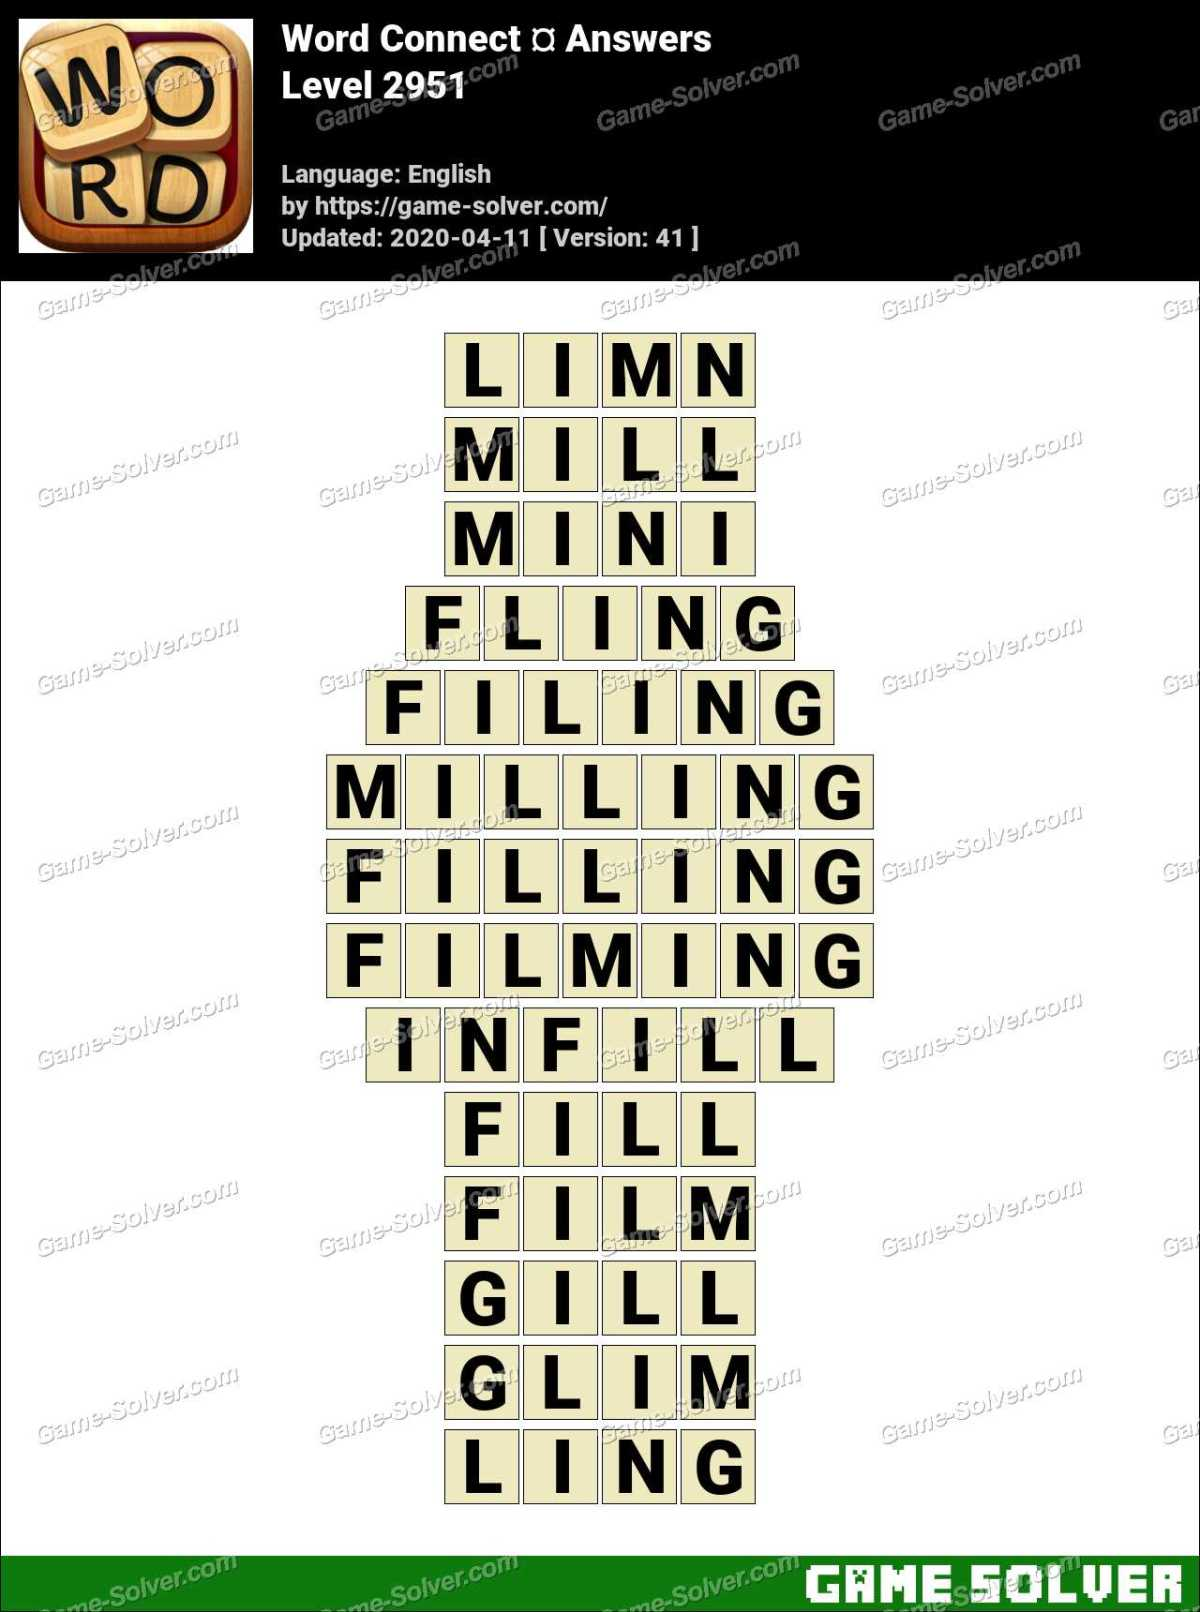 Word Connect Level 2951 Answers